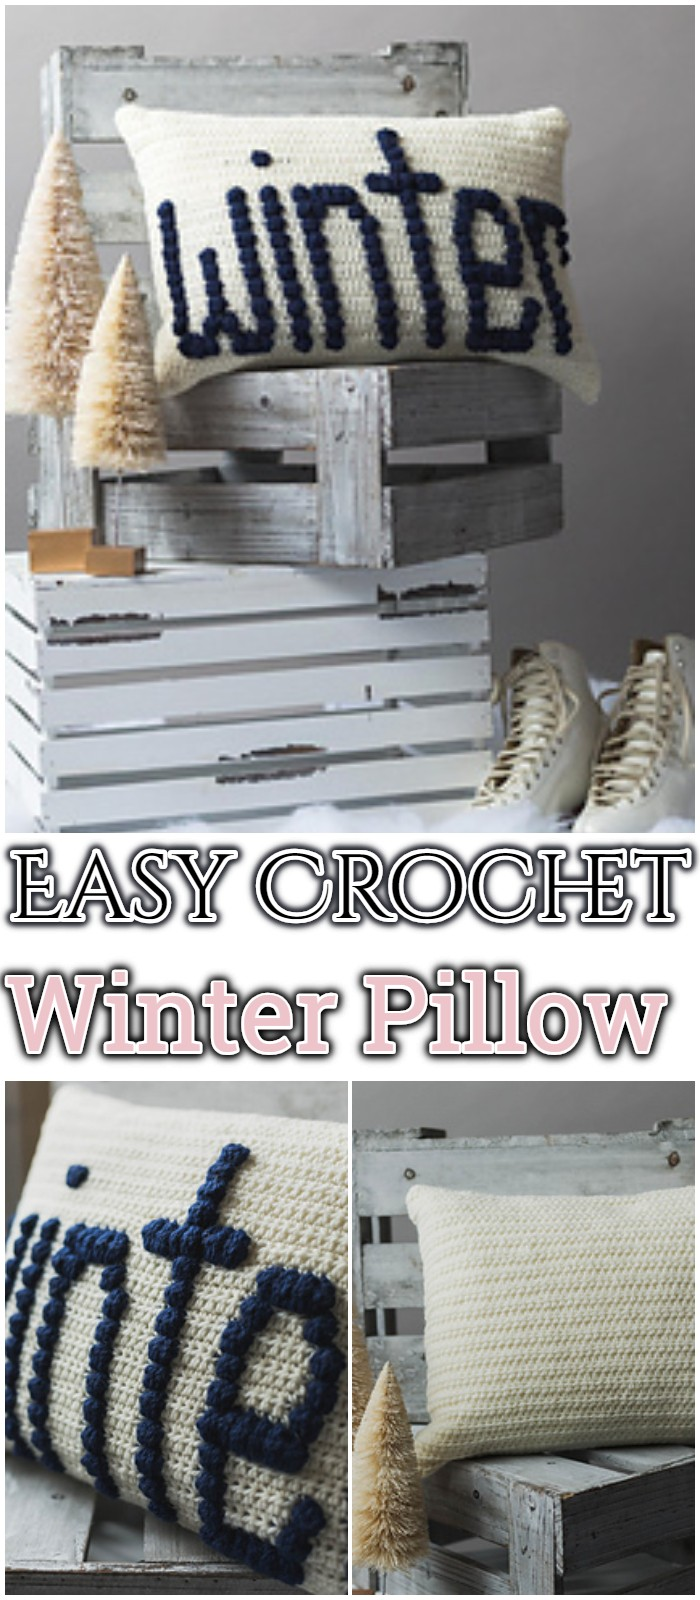 Easy Crochet Winter Pillow